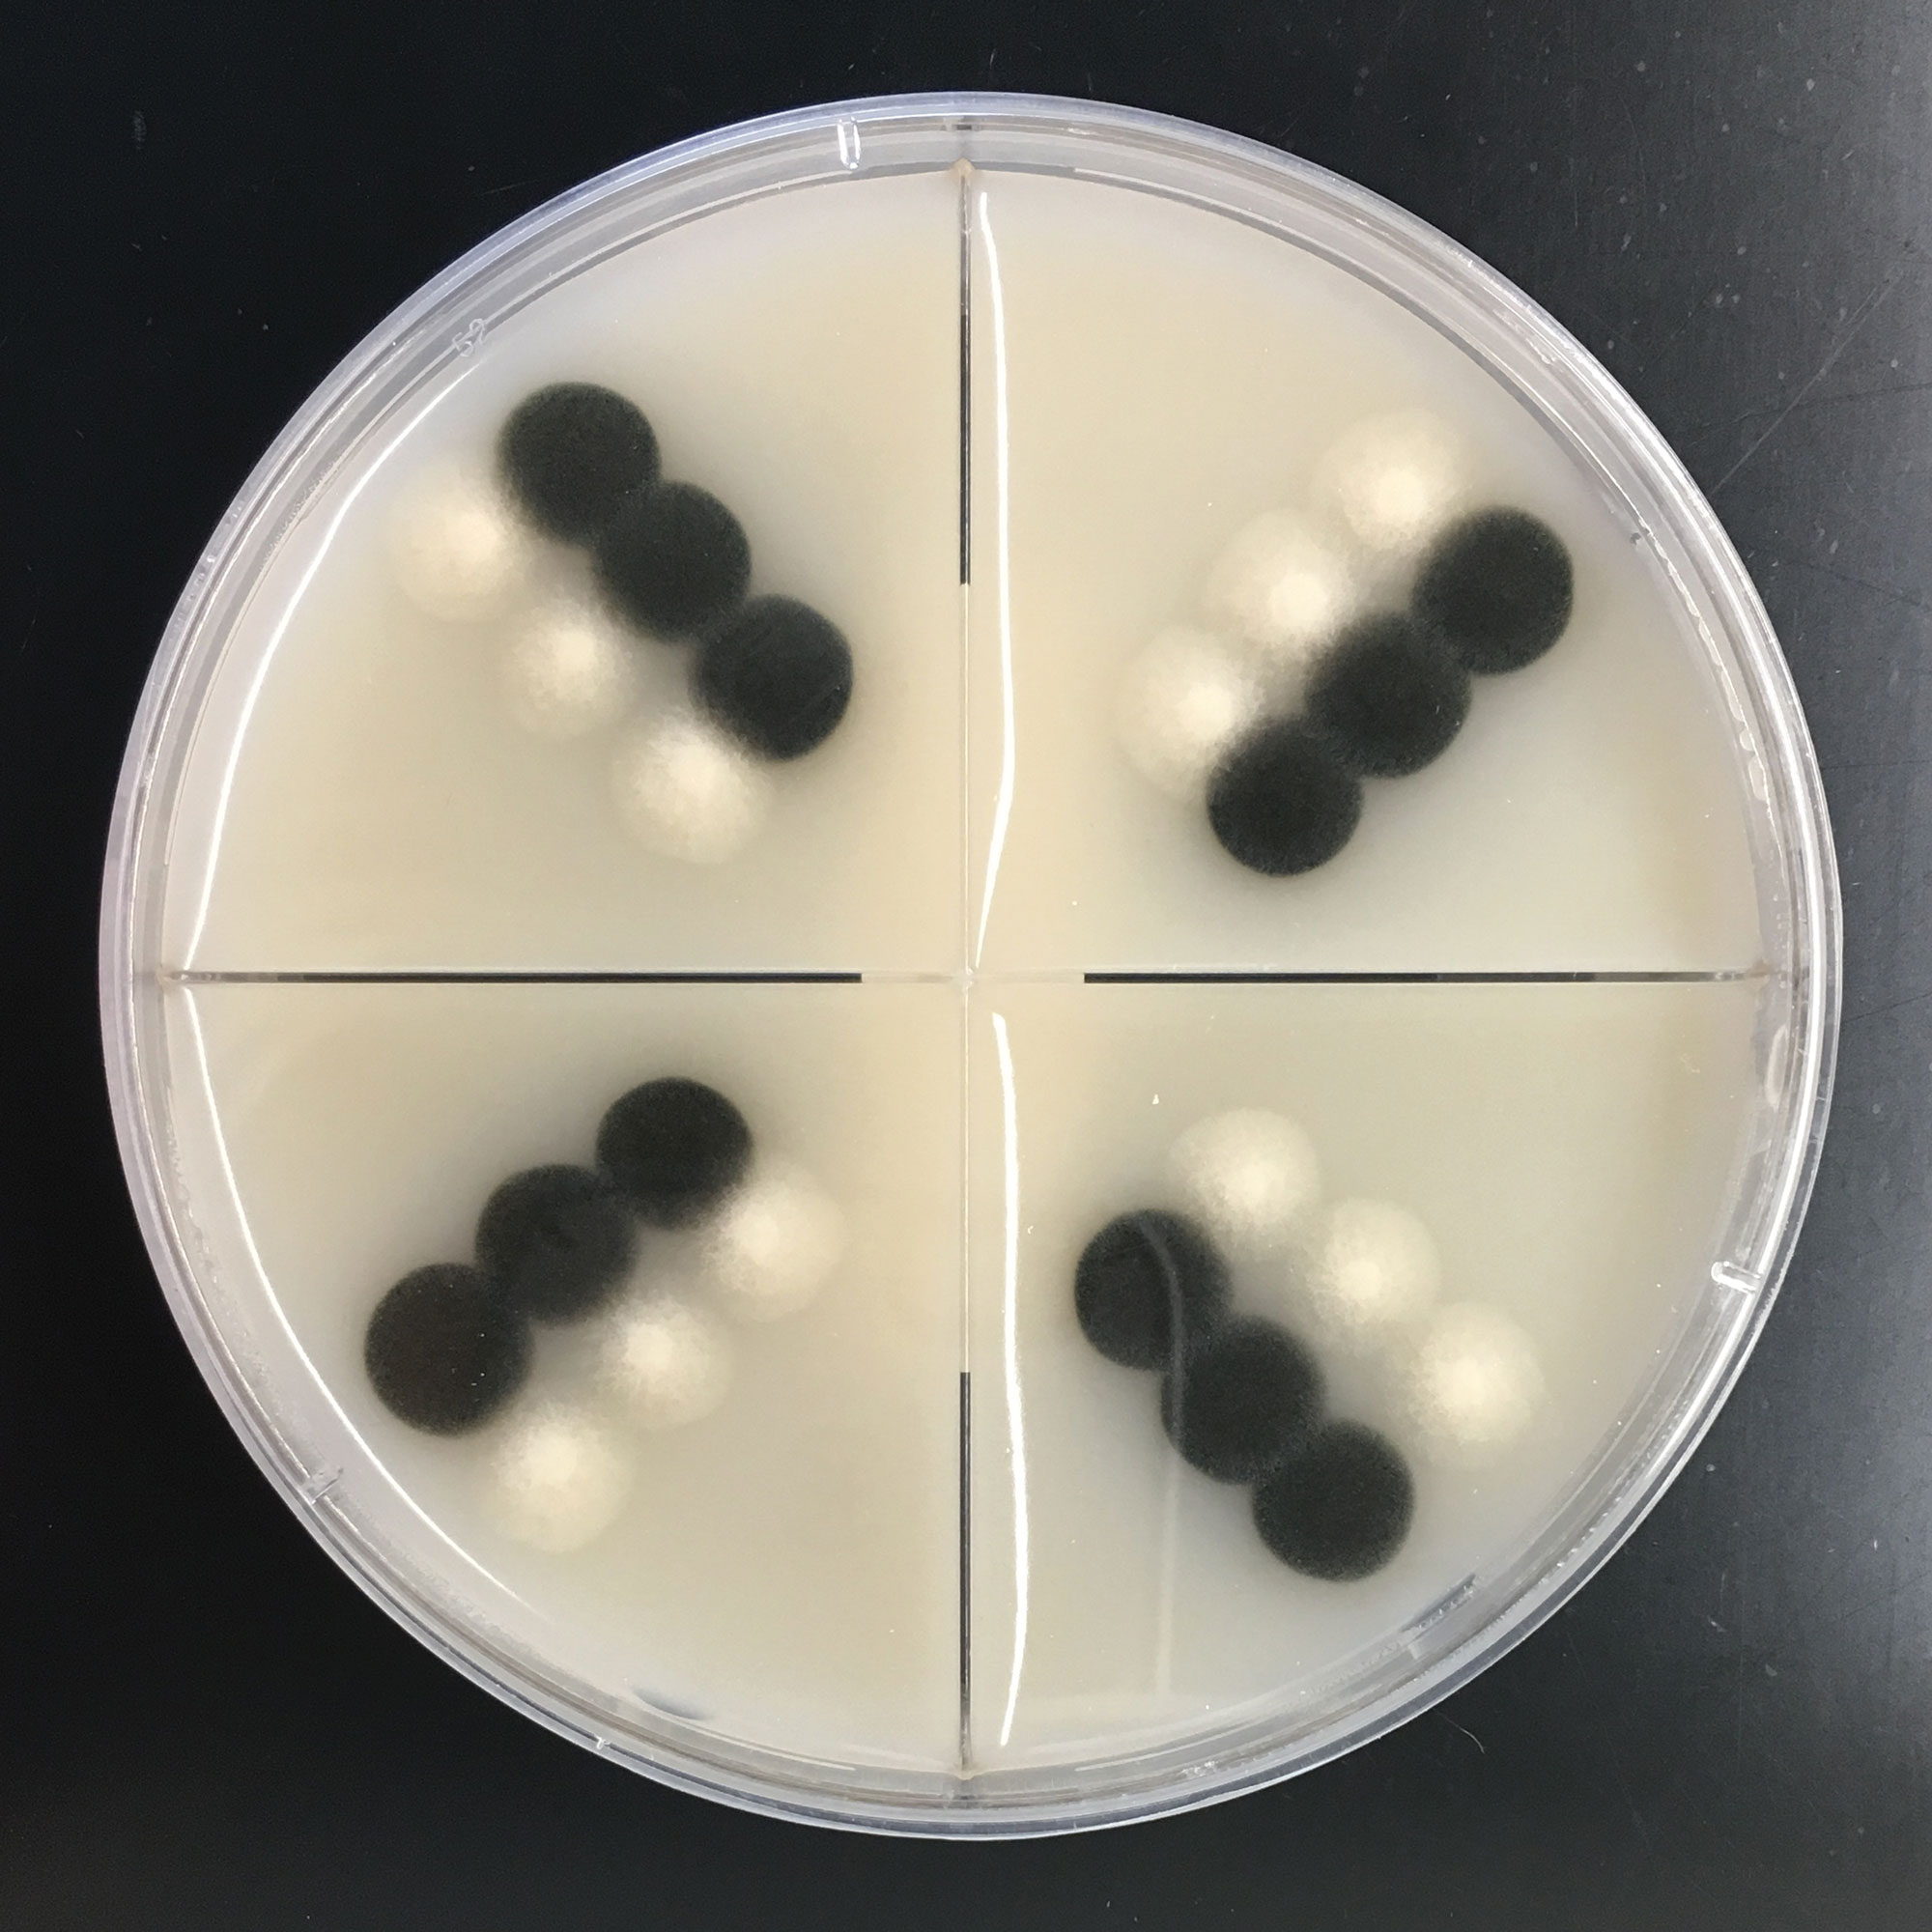 Two isolates of the fungus that causes pecan scab grow in a petri dish as part of a test to understand their mating behaviors. The black is a wild type, the most common form of the fungus. The white type is a natural variant isolated from the wild type.